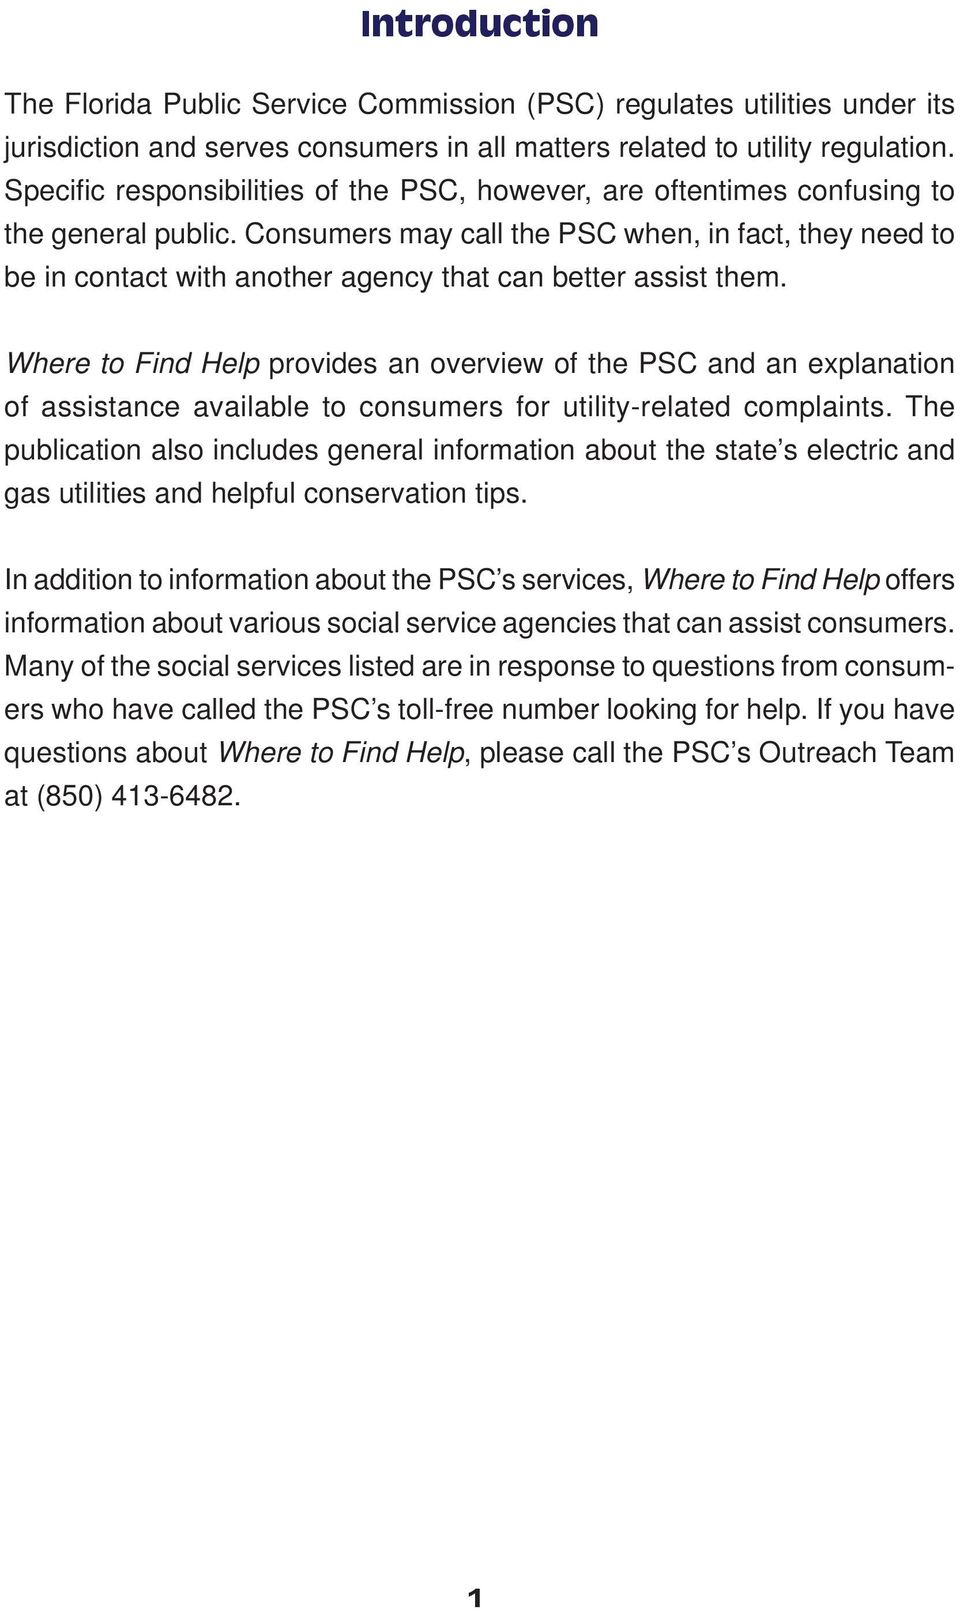 Consumers may call the PSC when, in fact, they need to be in contact with another agency that can better assist them.